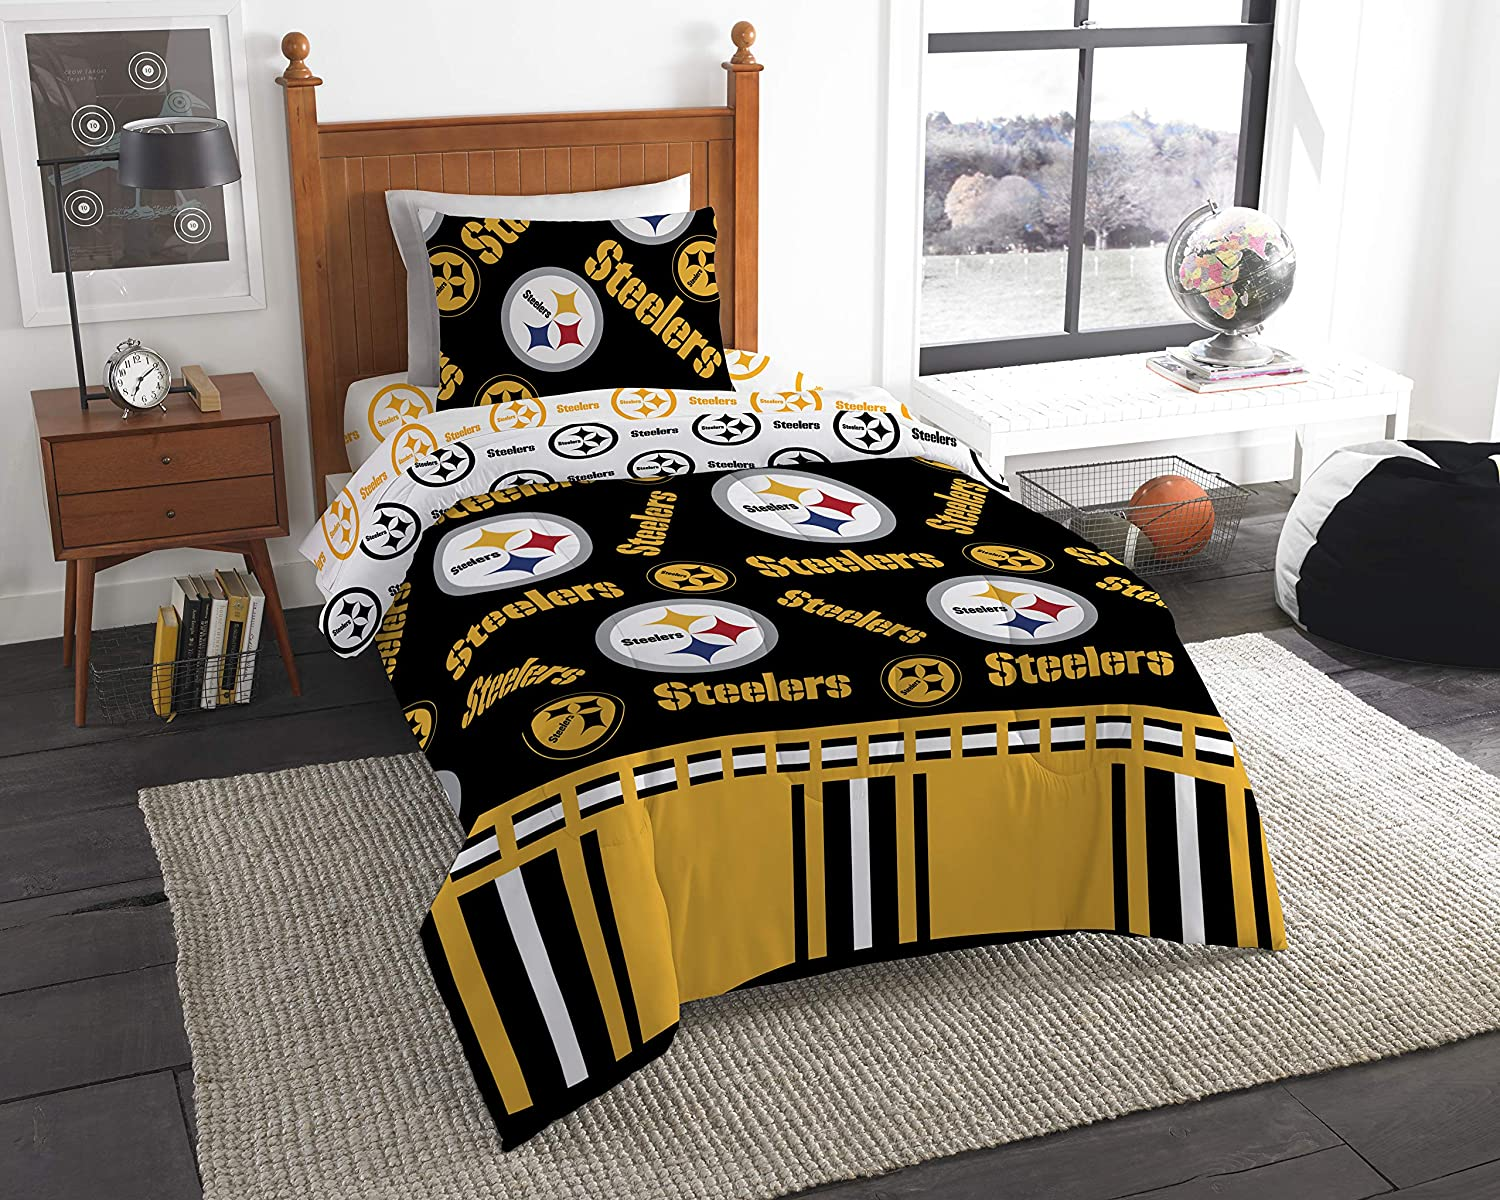 The Selling and selling Northwest Company Officially NFL Cheap mail order specialty store Steeler Licensed Pittsburgh